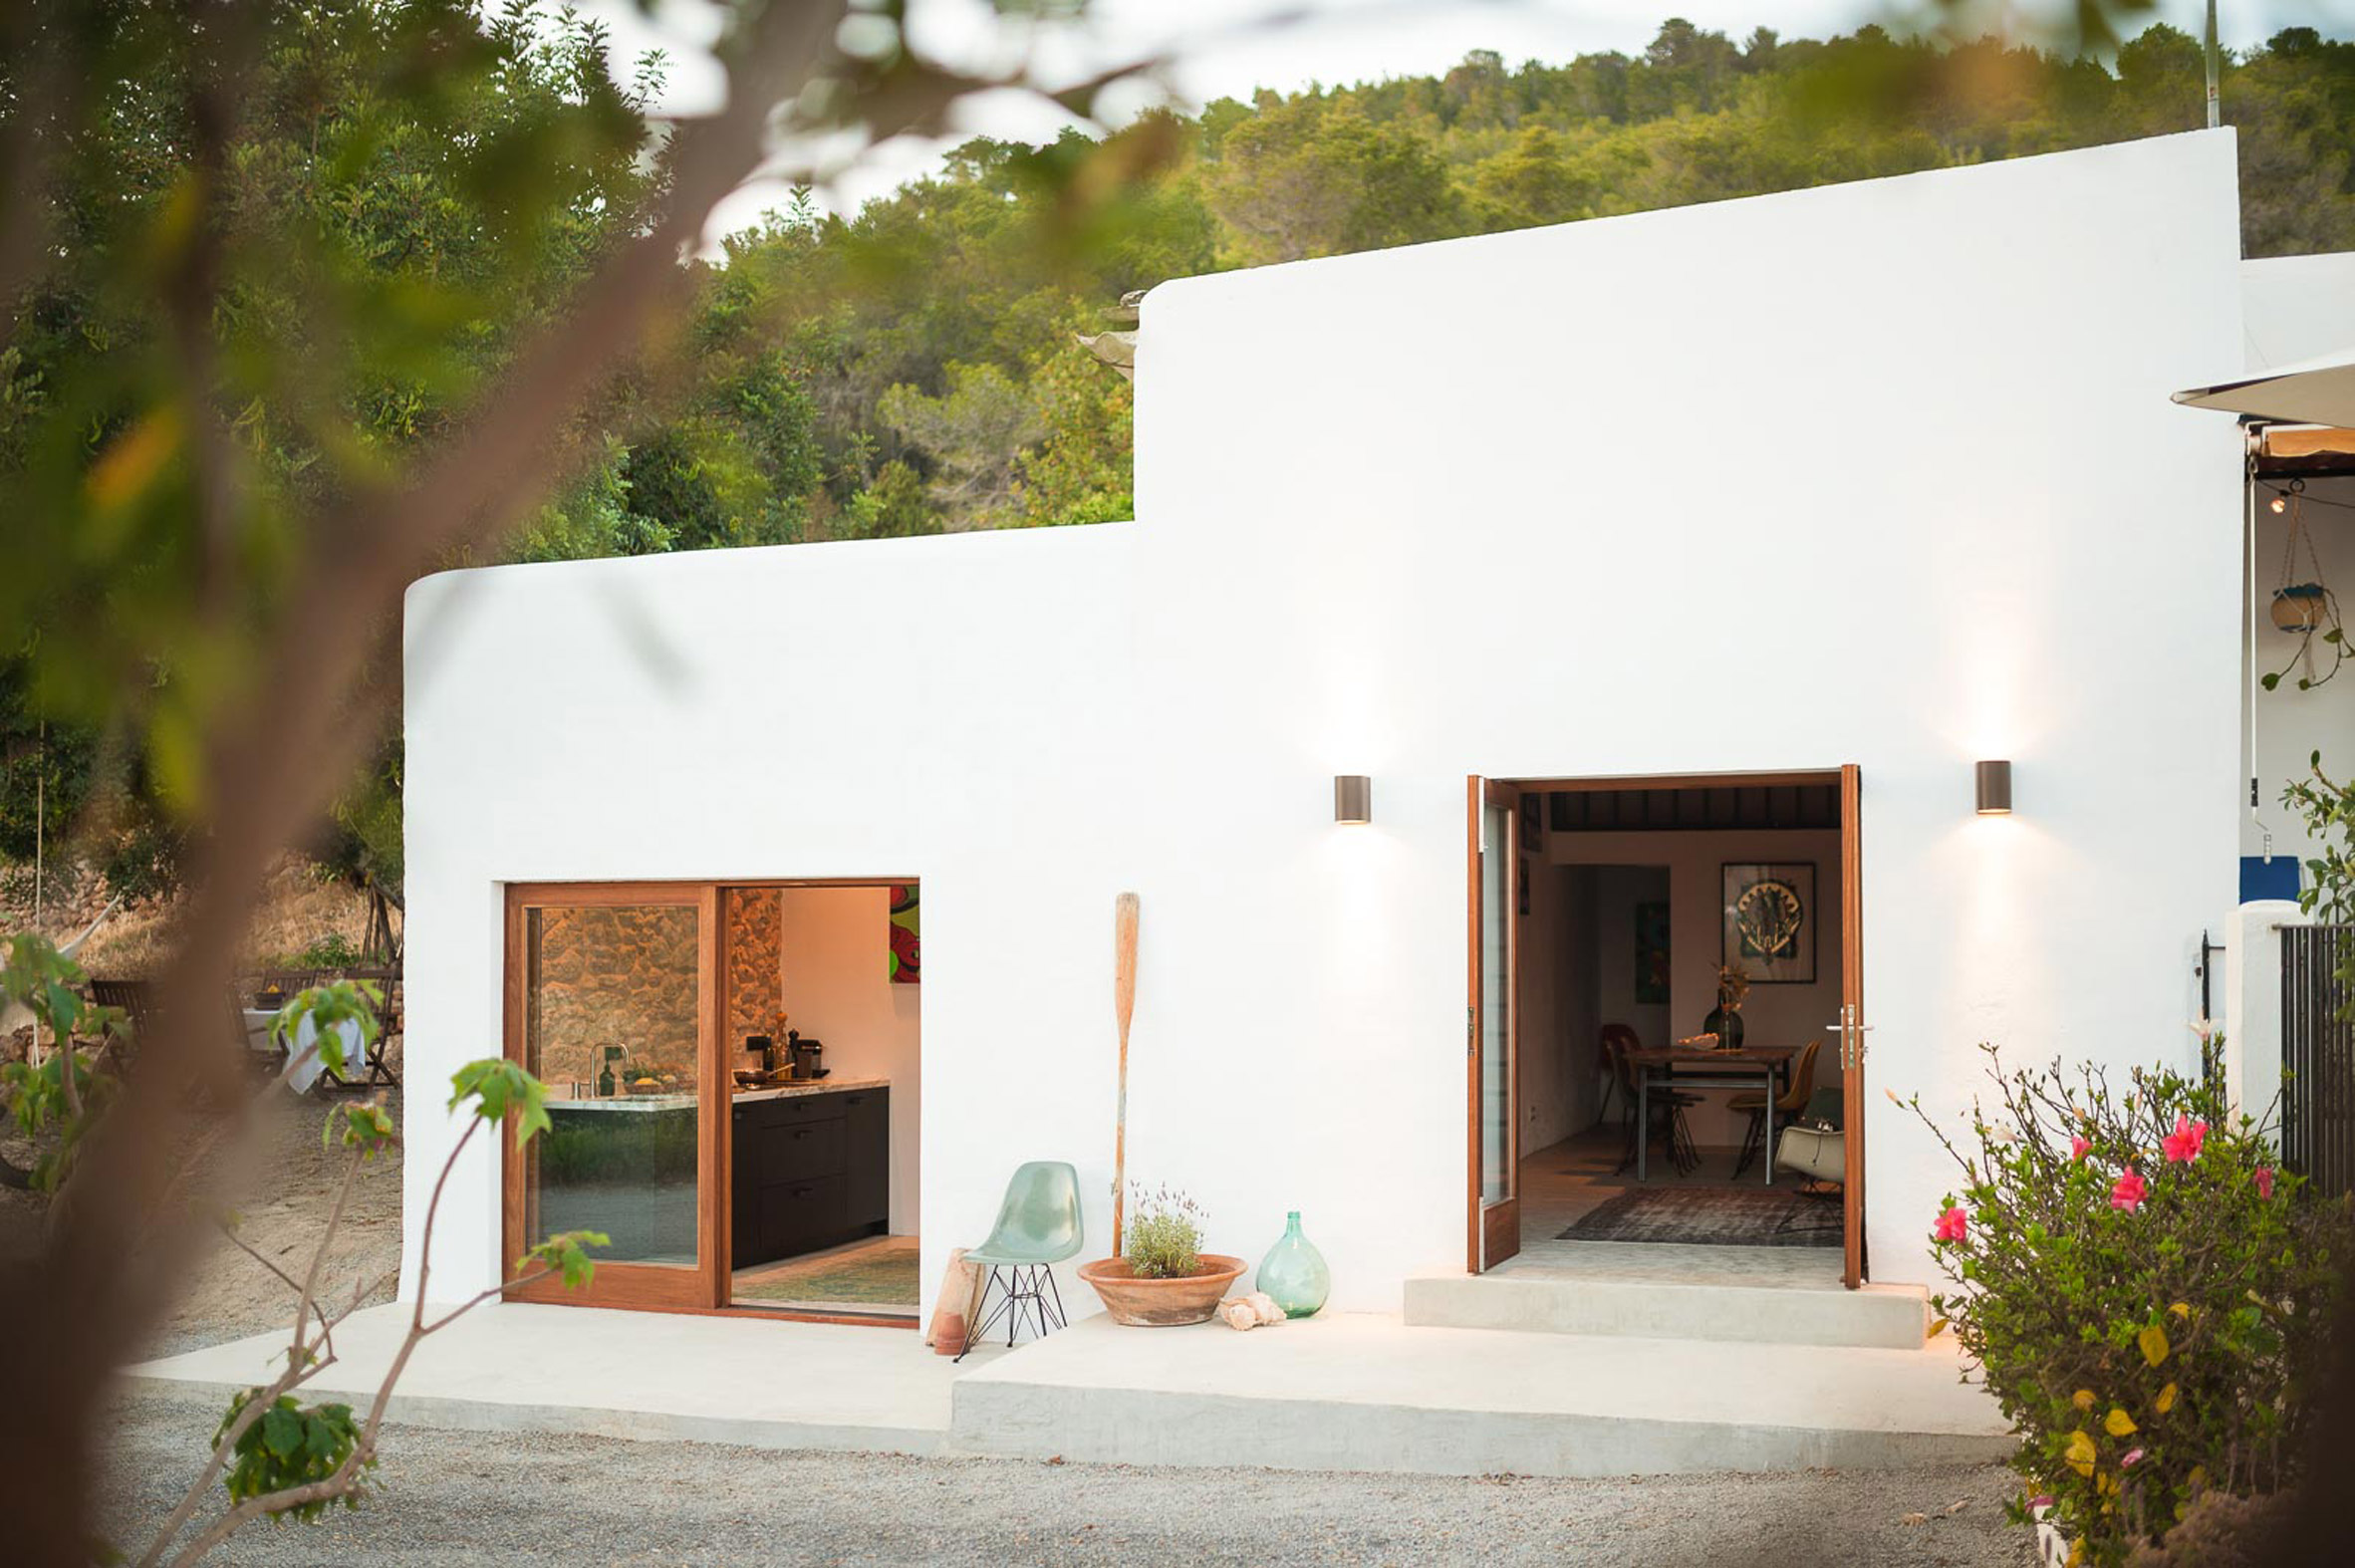 Standard Studio converts 200-year-old Ibiza stable into self-sufficient cottage